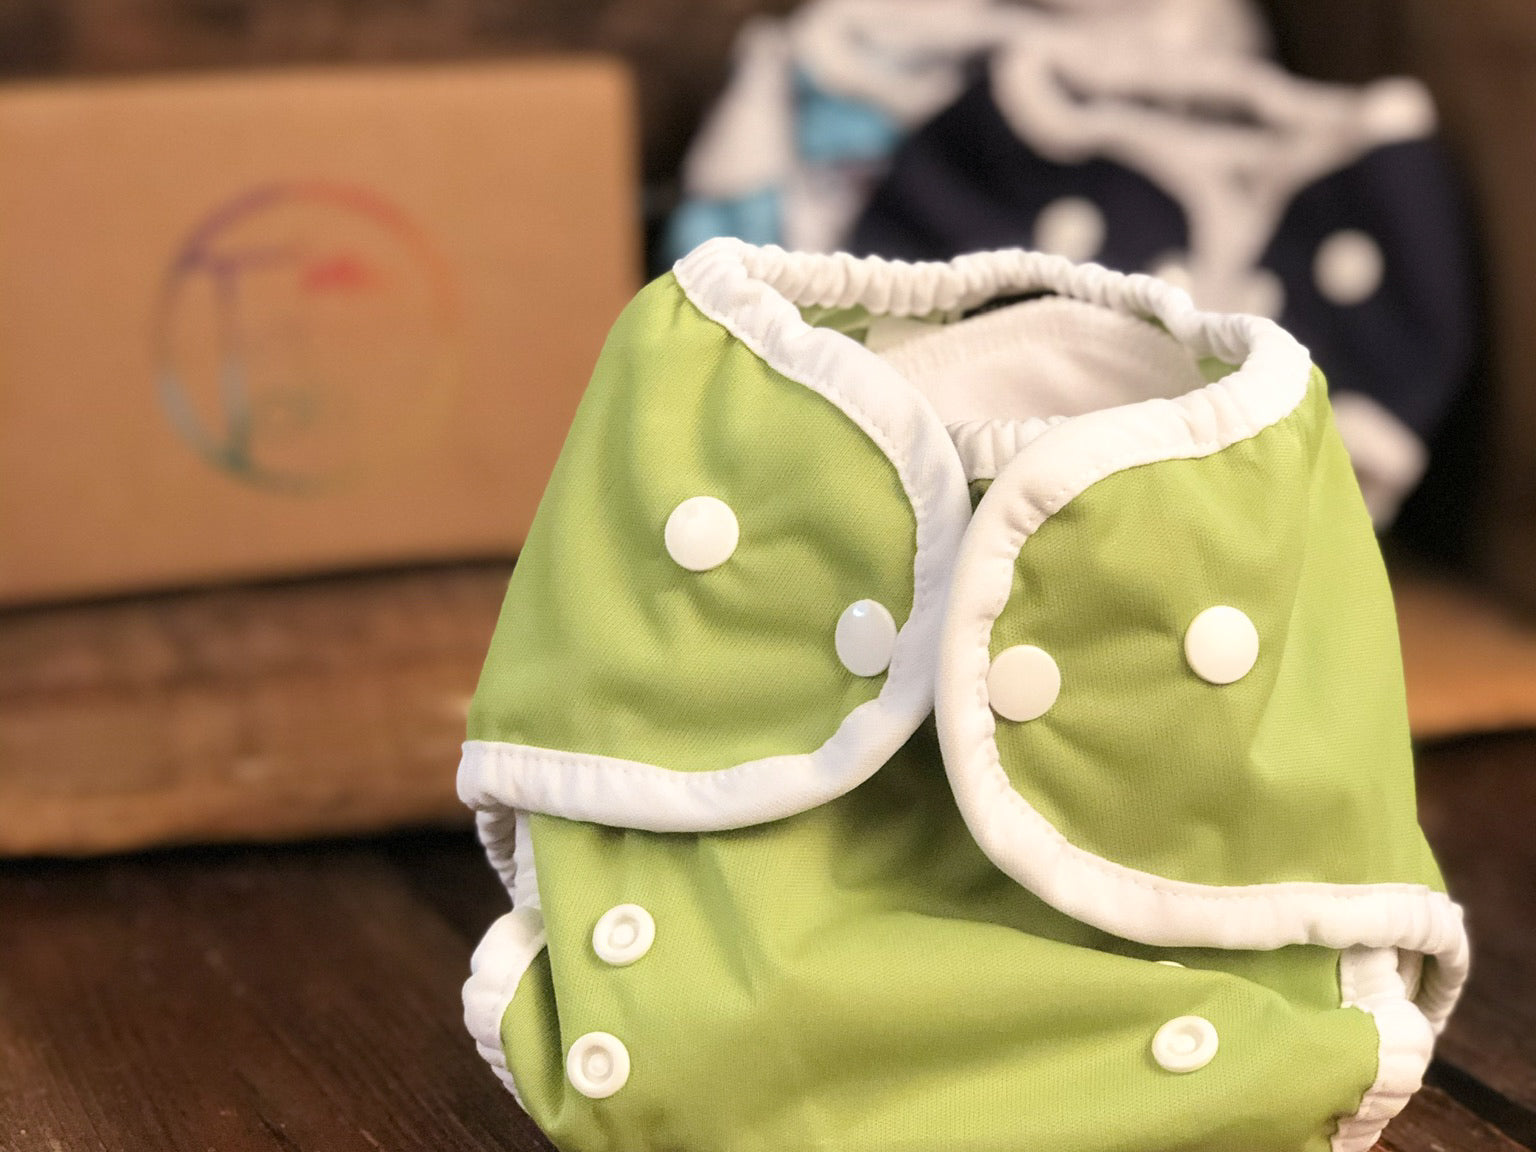 Cloth Diapering Quick Pick